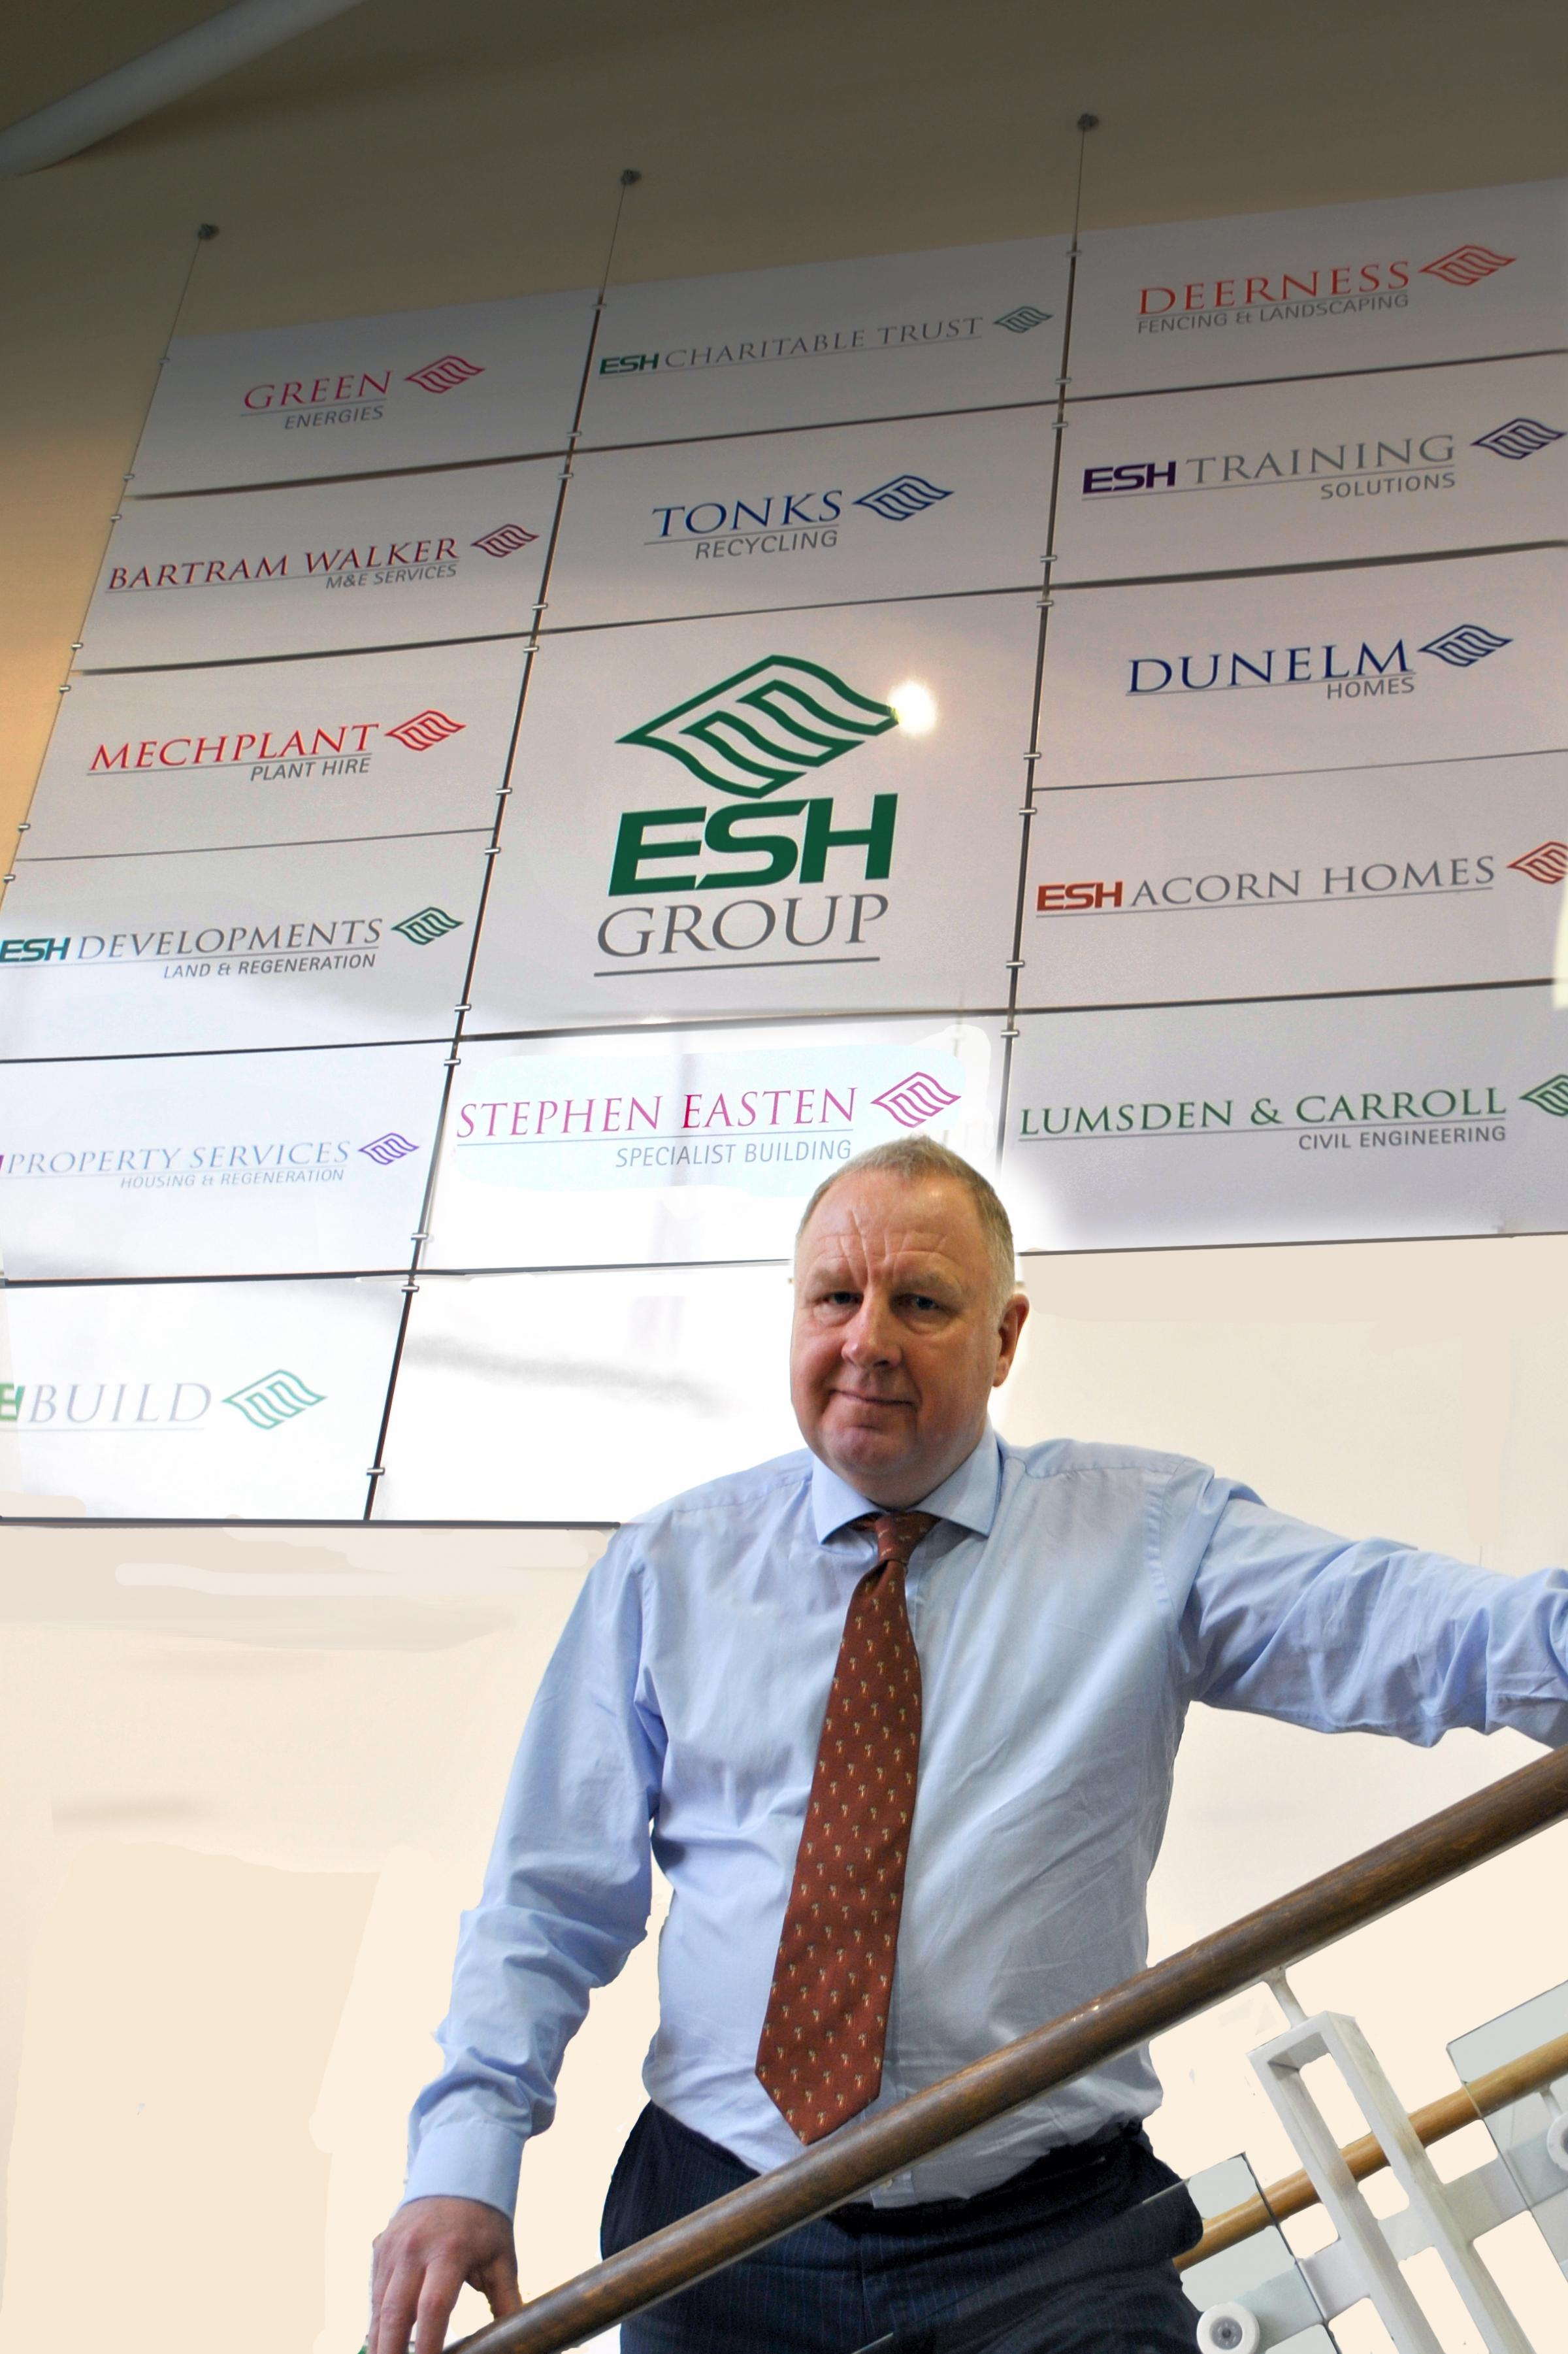 Brian Manning, chief executive of Esh Group: